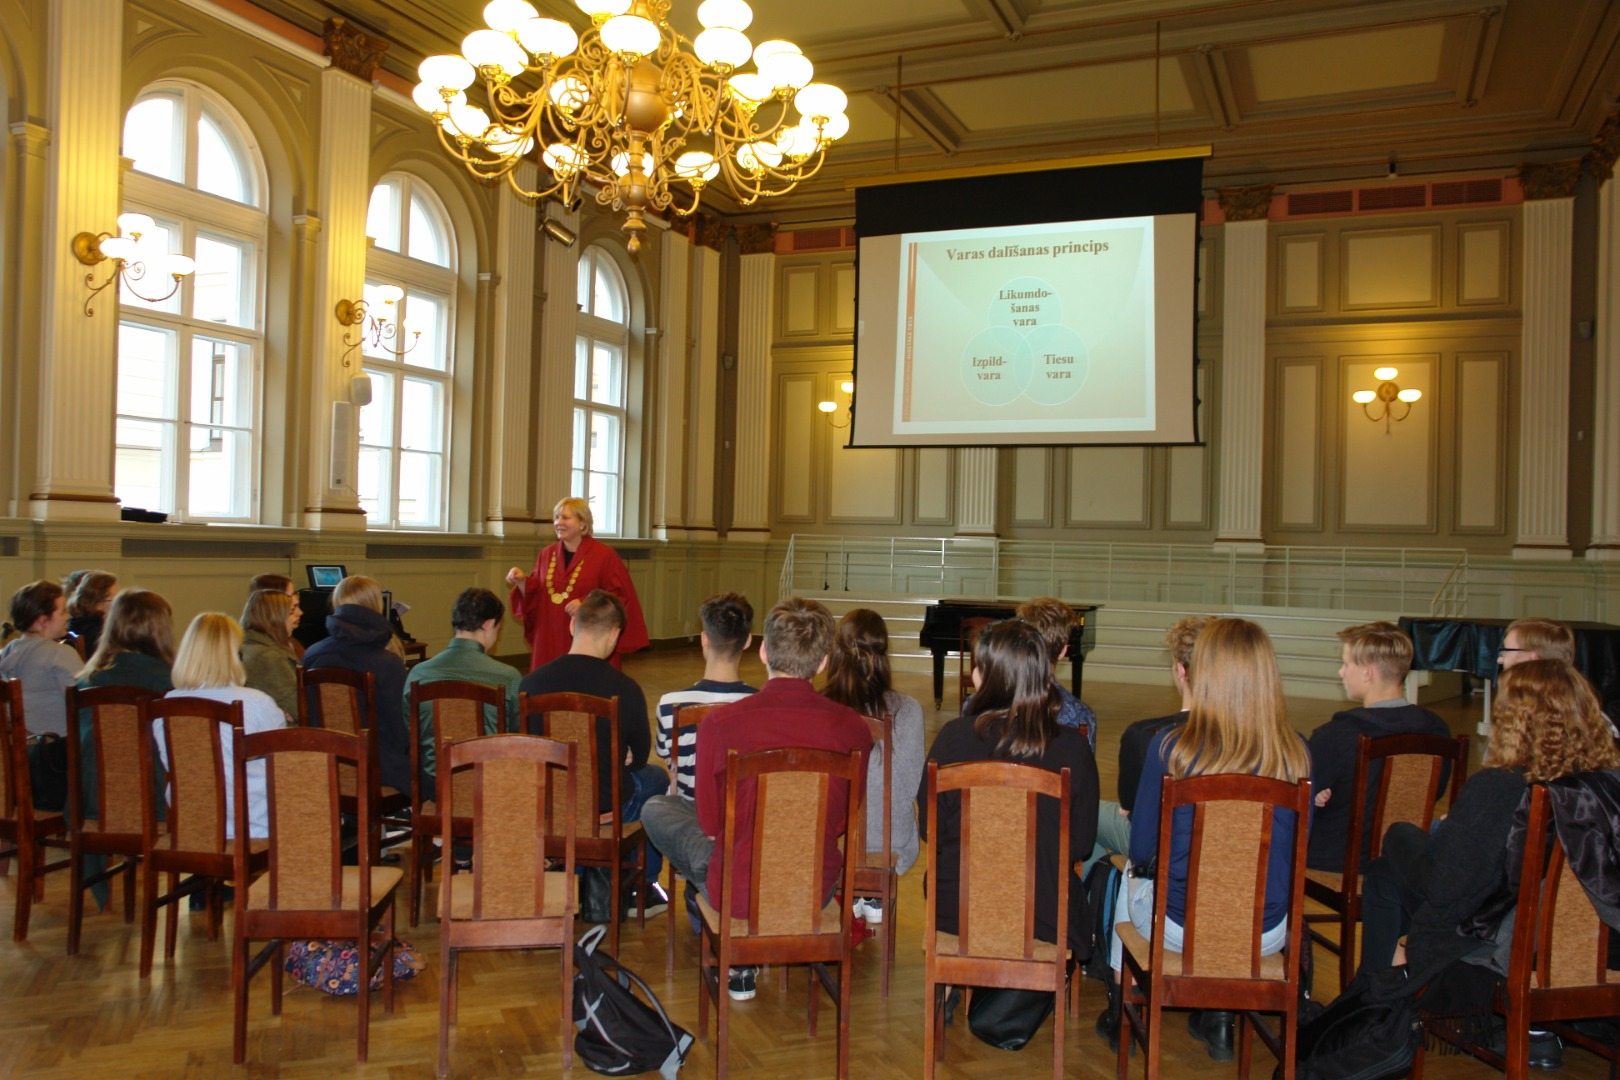 31.10.2018. In the centenary year of Latvia, the Supreme Court invited judges to visit their schools and talk to students about Latvia and the role of the judge in national life. Chair of the Department of Administrative Cases Veronika Krumina gave a lesson in law to 12th grade students at Riga State Gymnasium No. 2, which she called hers for eleven years, as well as at Akniste Secondary School where her mother studied.